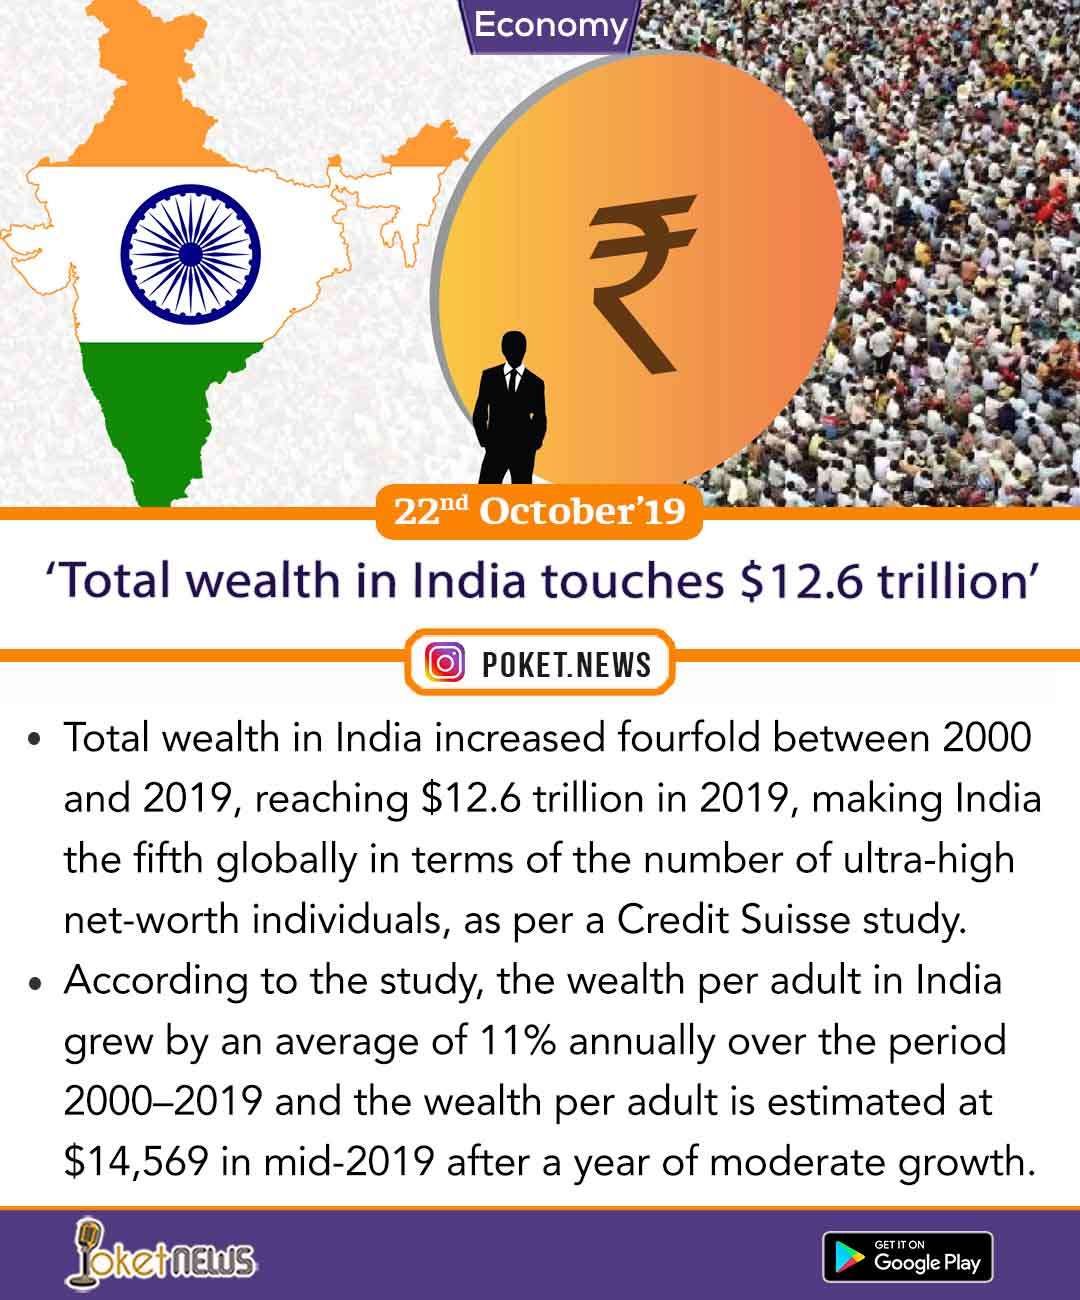 'Total wealth in India touches $12.6 trillion'